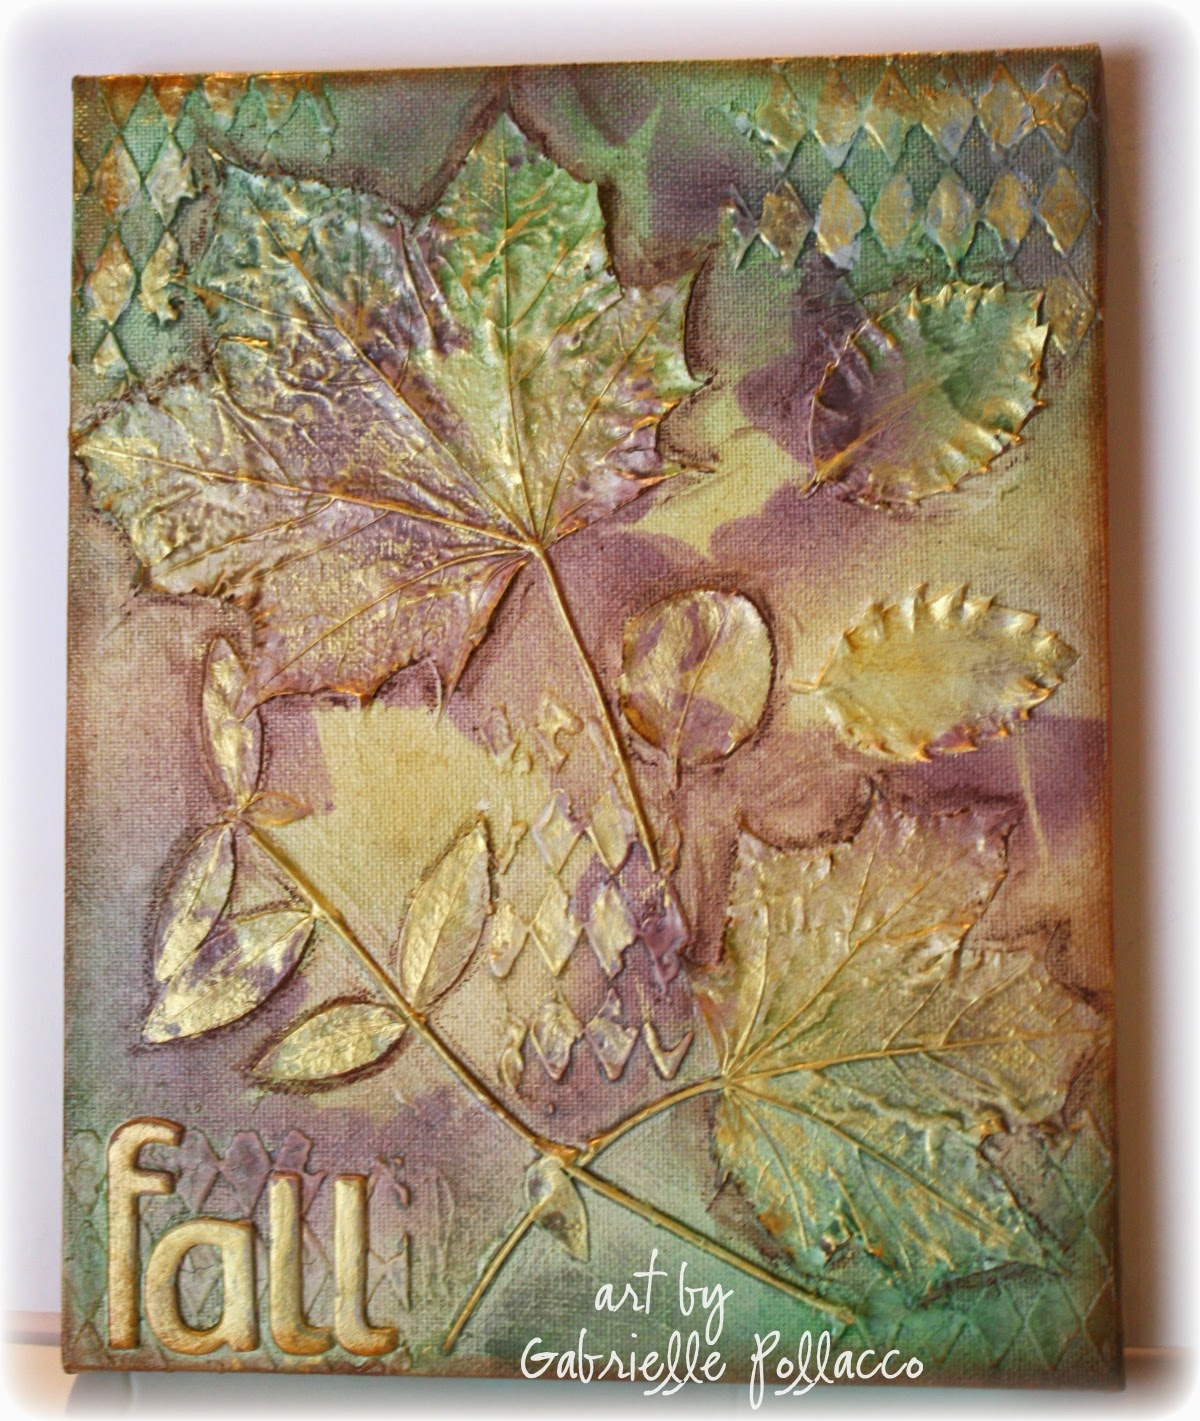 Autumn Canvas by Gabrielle Pollacco using Shimmerz Paints